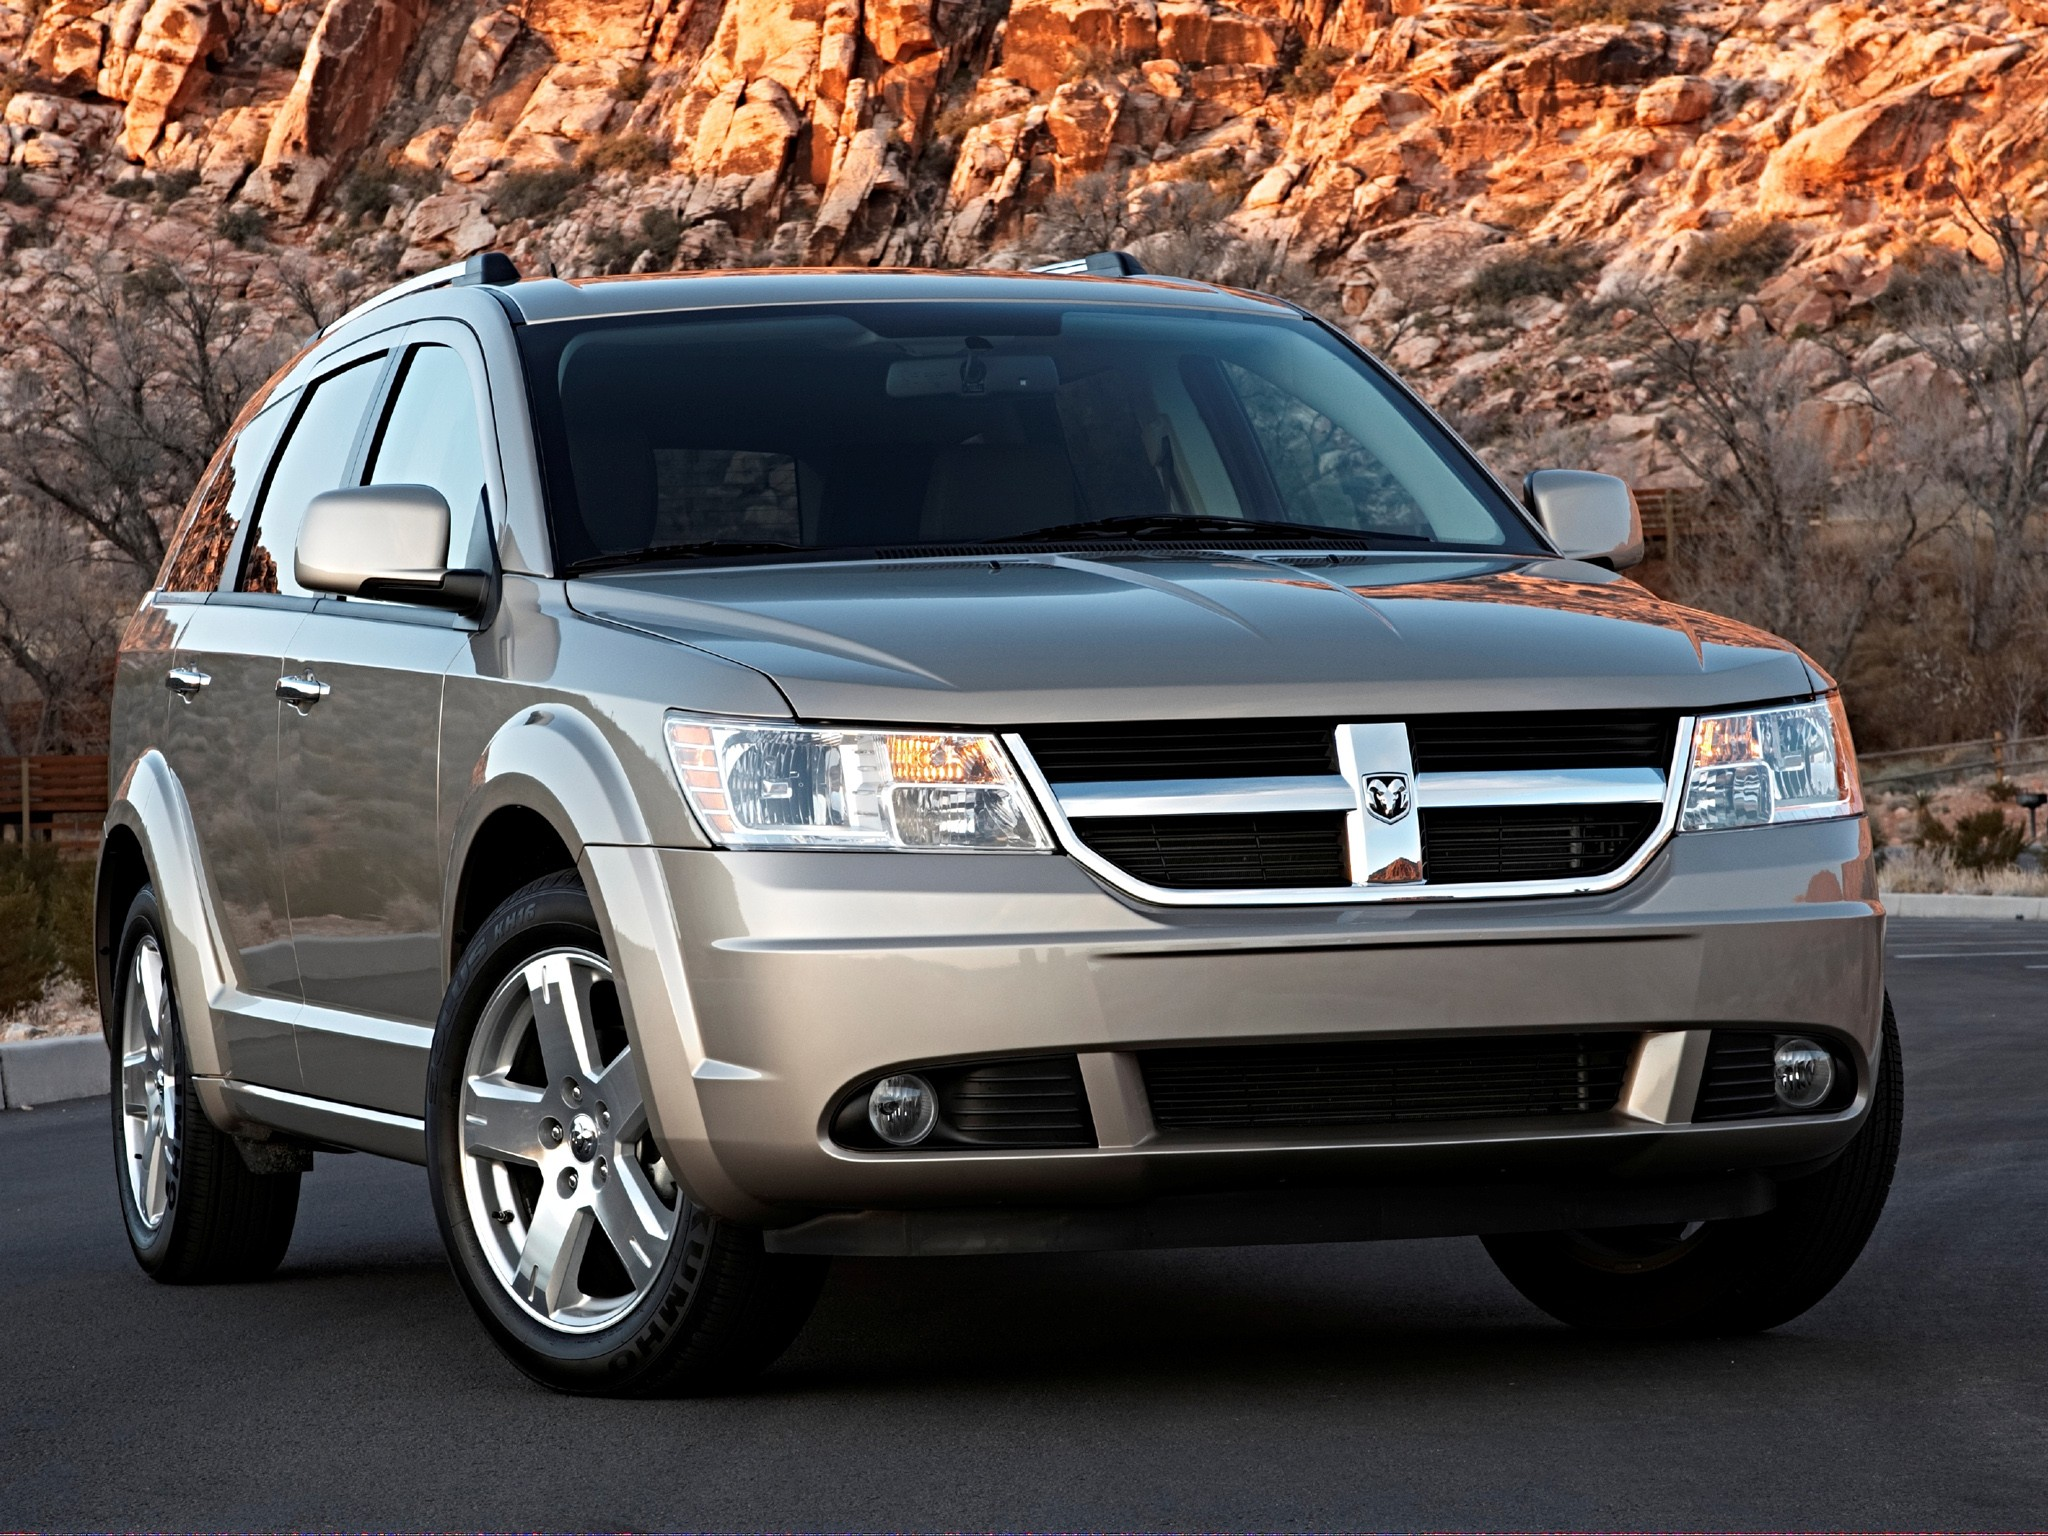 Dodge Journey on 2009 Dodge Durango